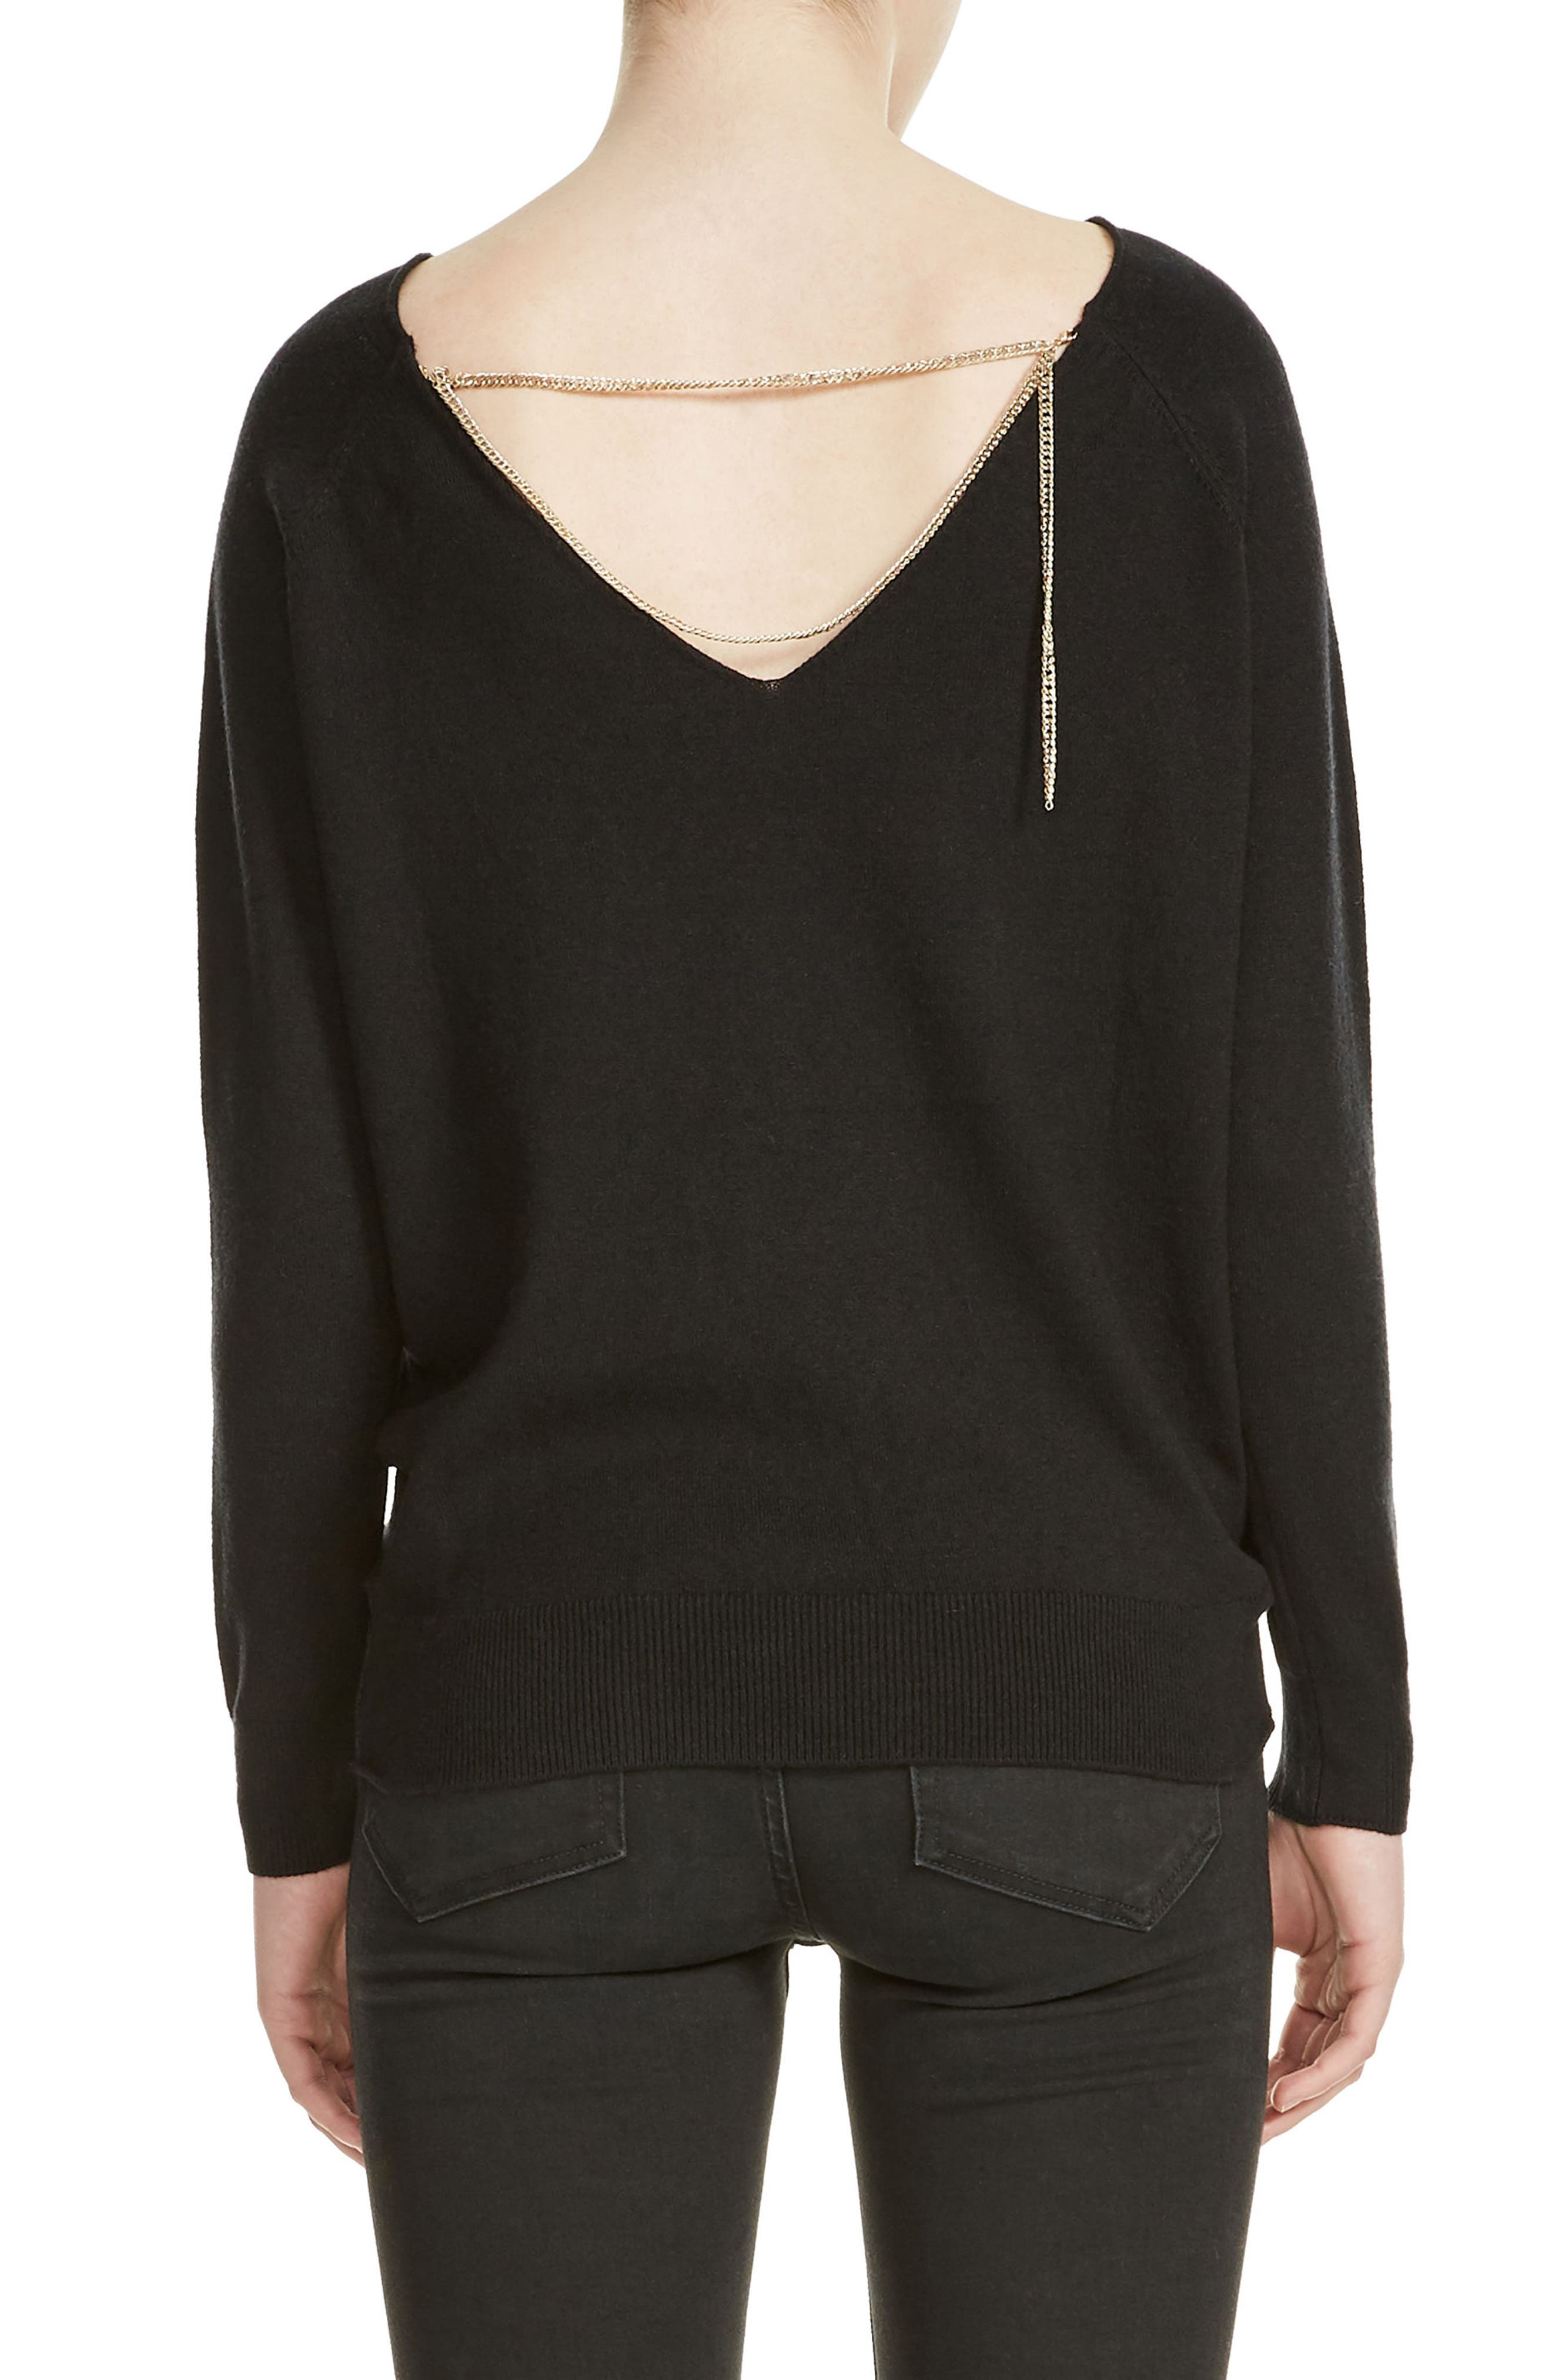 Macademia Chain Back Sweater,                             Alternate thumbnail 2, color,